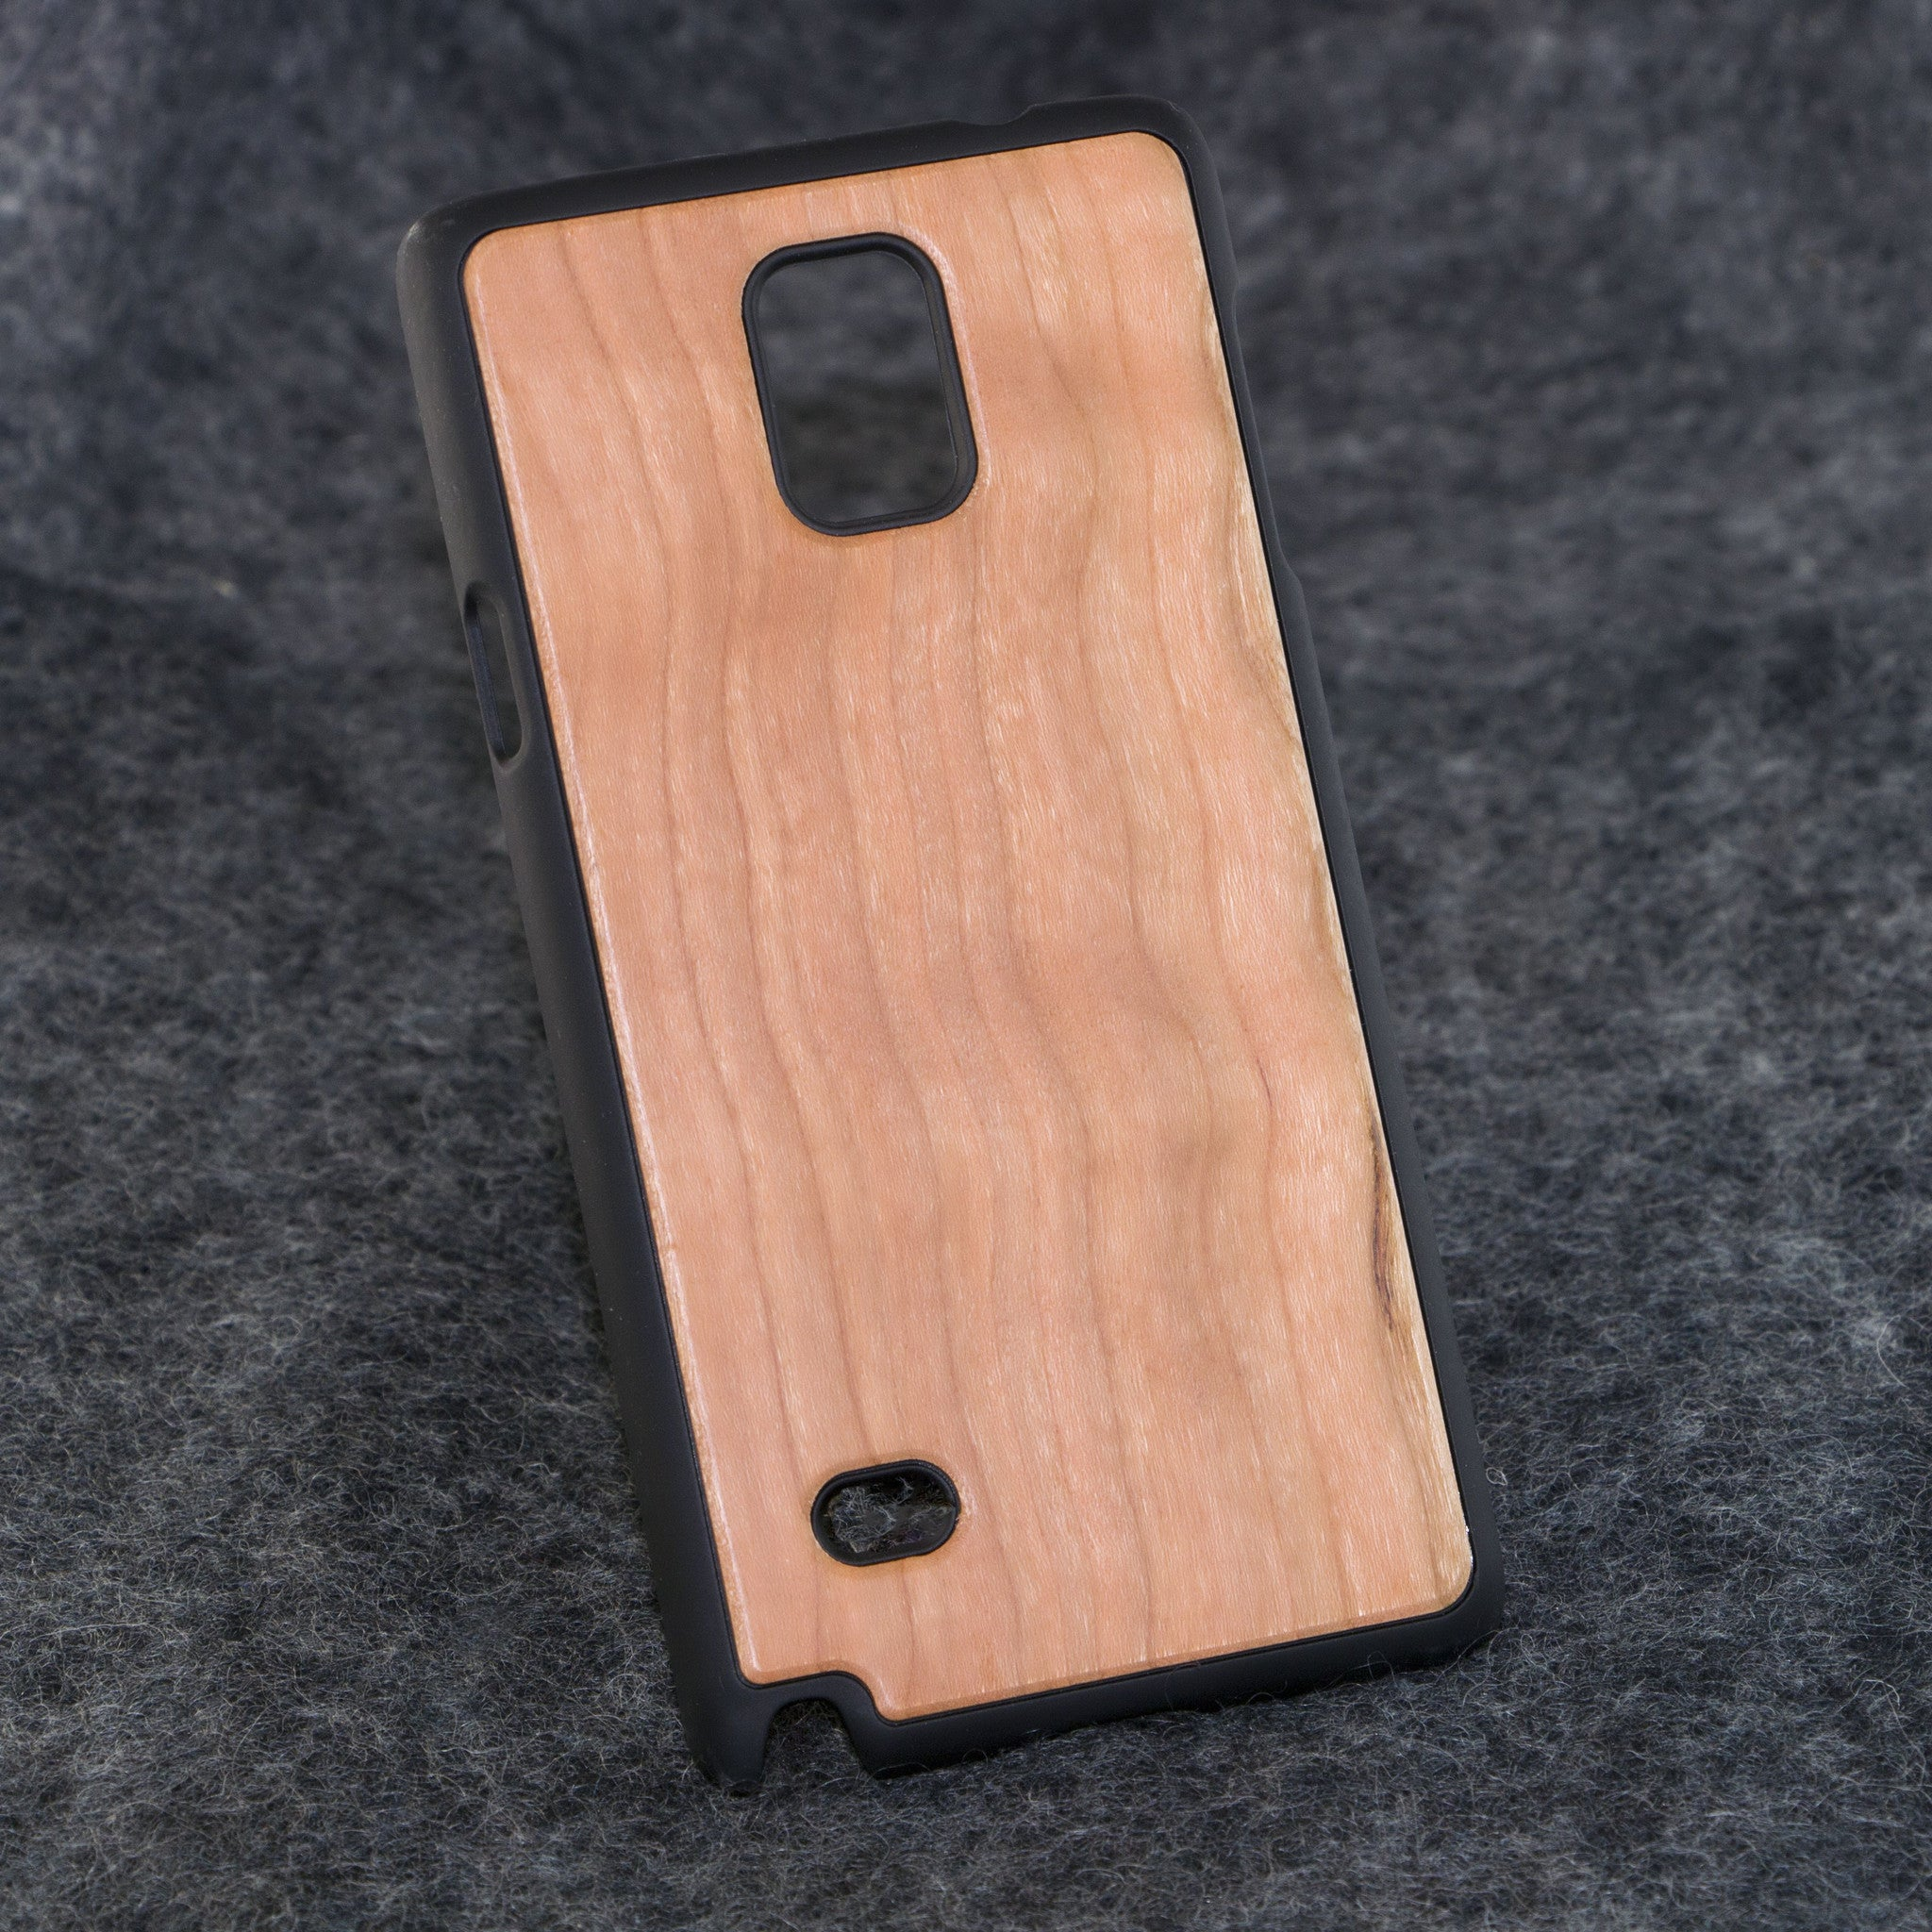 Samsung Note 4 Blank Slim Wood Case - NOLACASE